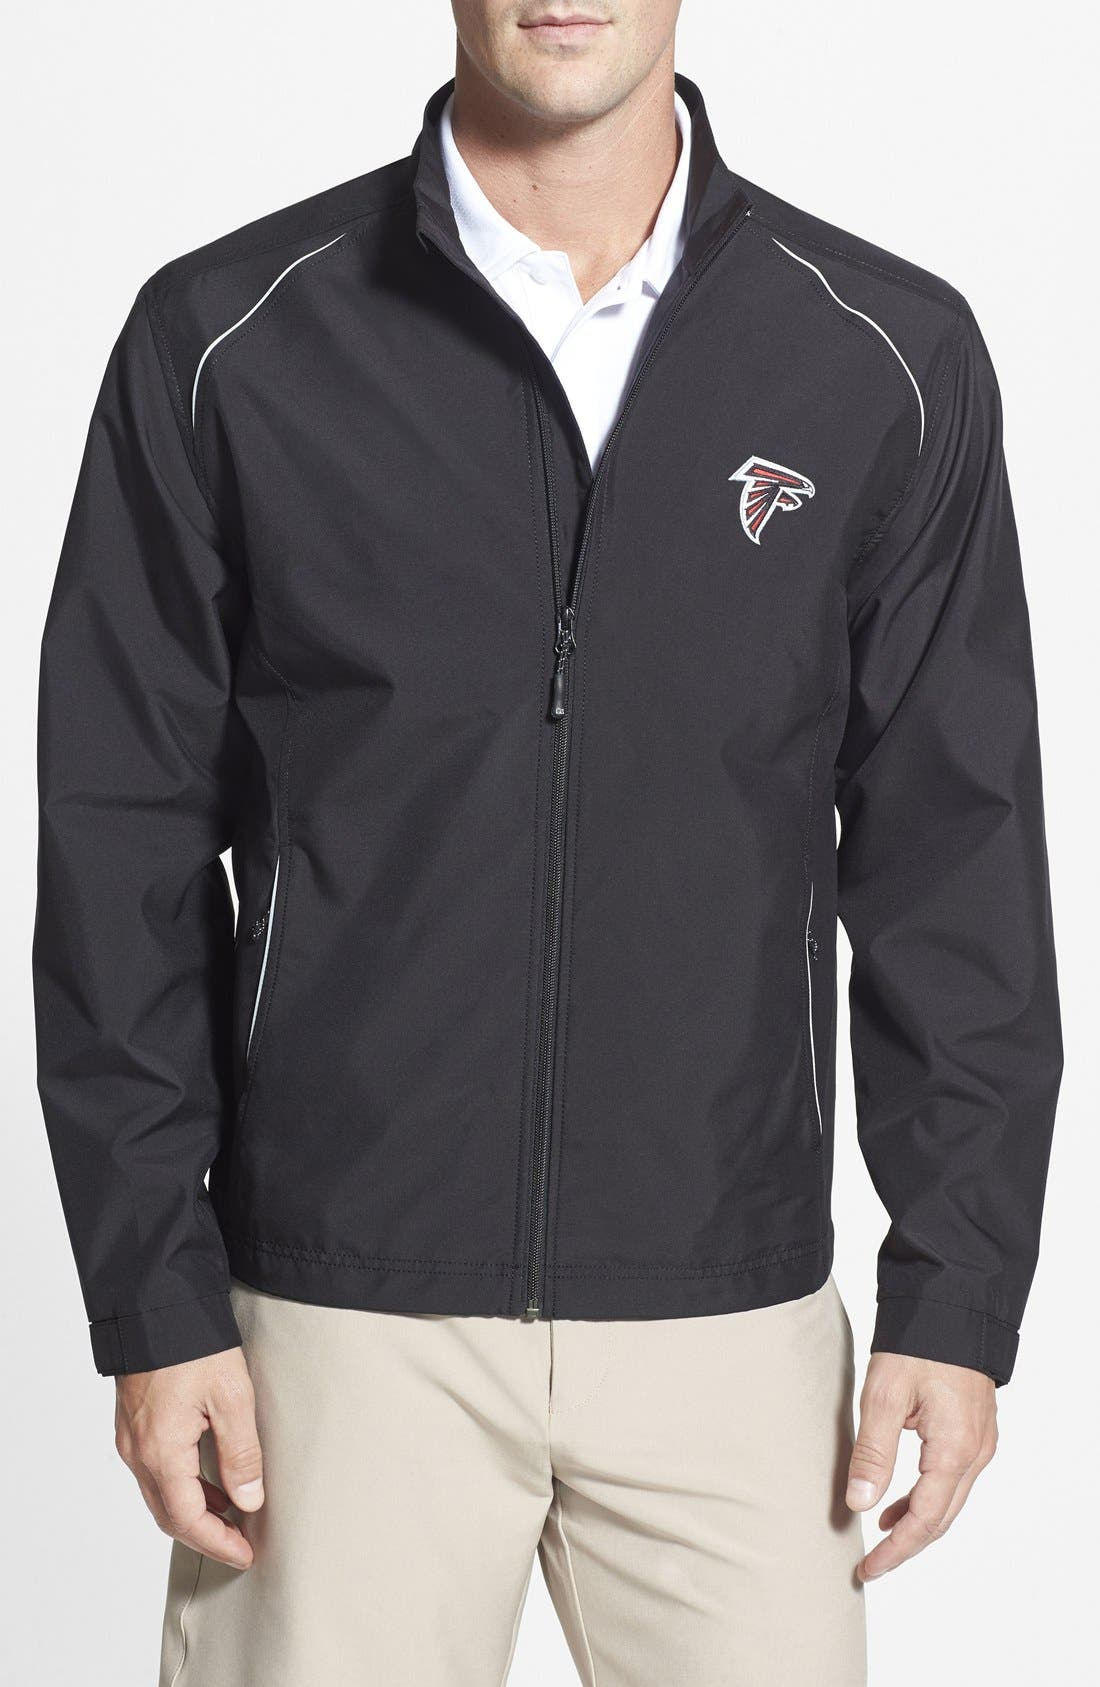 Cutter & Buck 'Atlanta Falcons - Beacon' WeatherTec Wind & Water Resistant Jacket (Big & Tall)